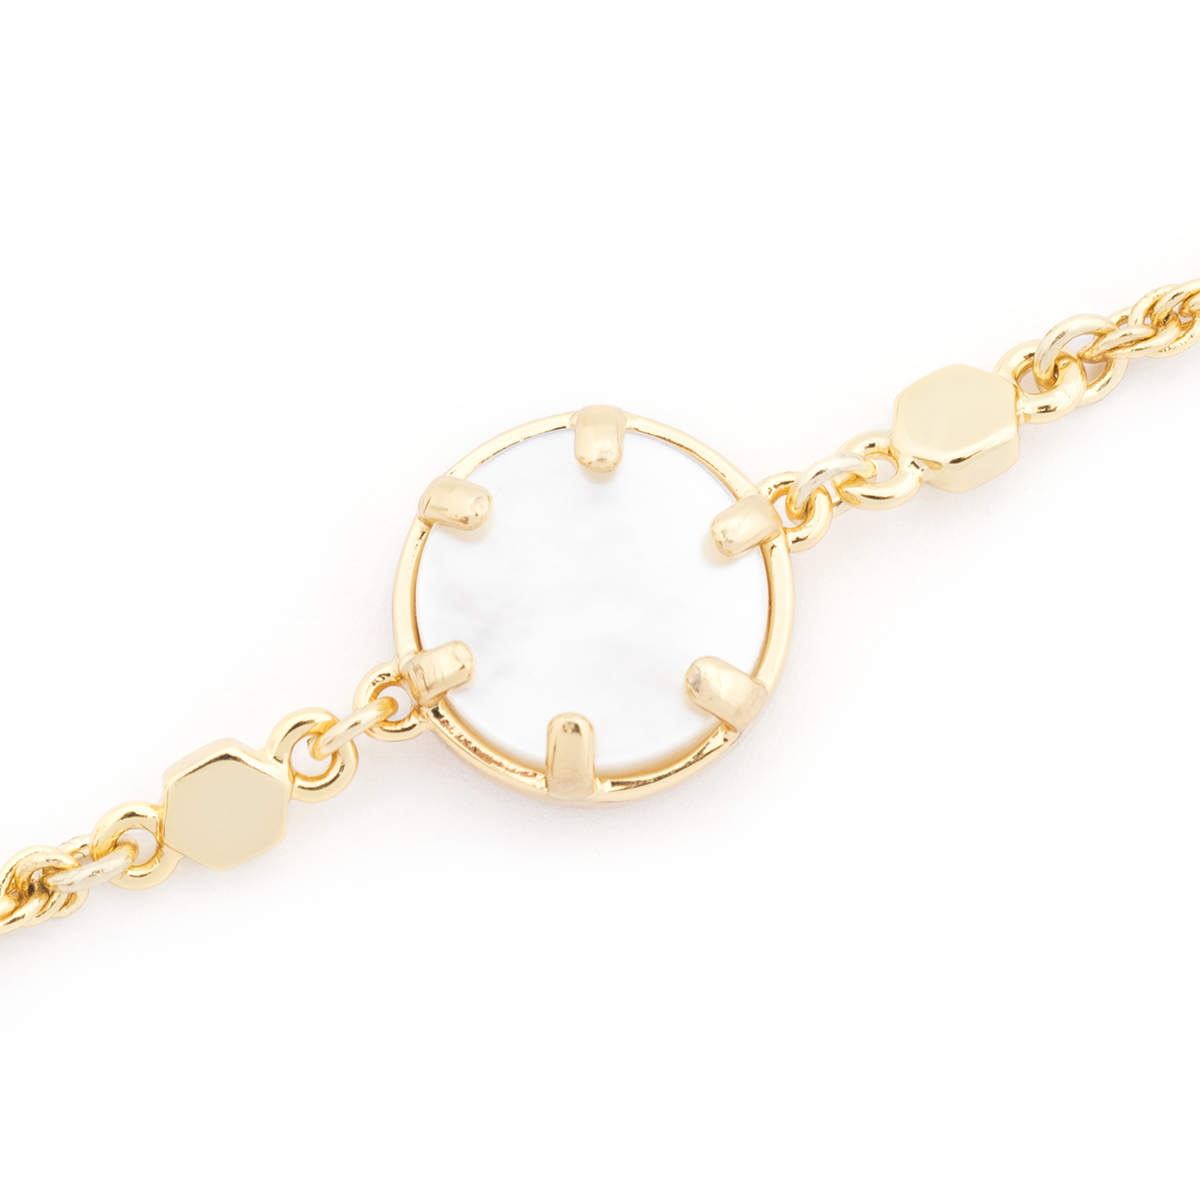 Mini Filigree Bracelet - Mother of Pearl